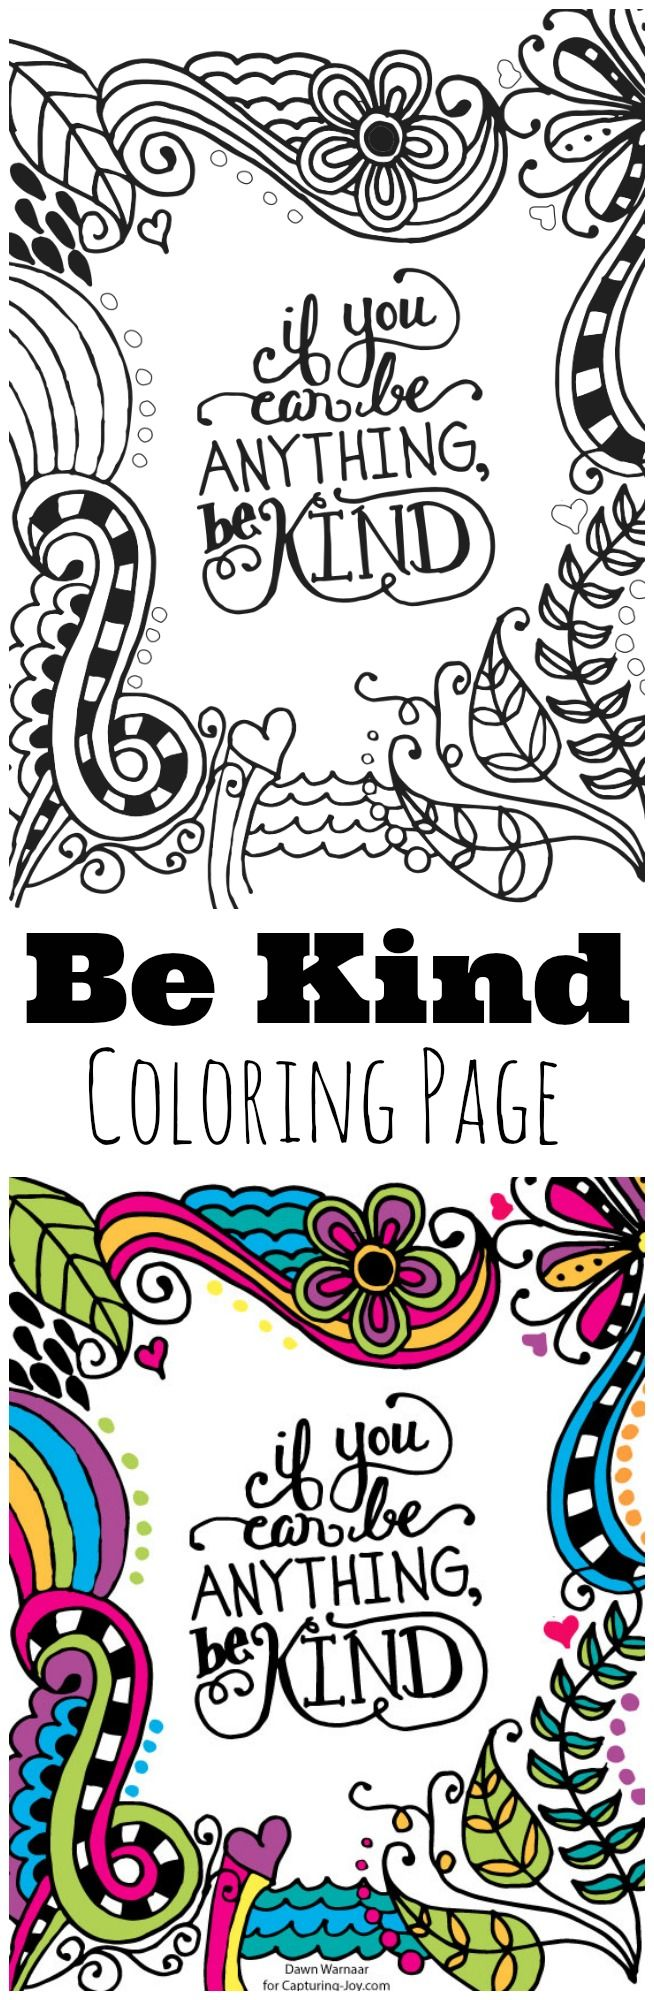 Coloring pages with quotes - Be Kind Kids Coloring Page Great For Kids To Help Encourage Kindness Hang On